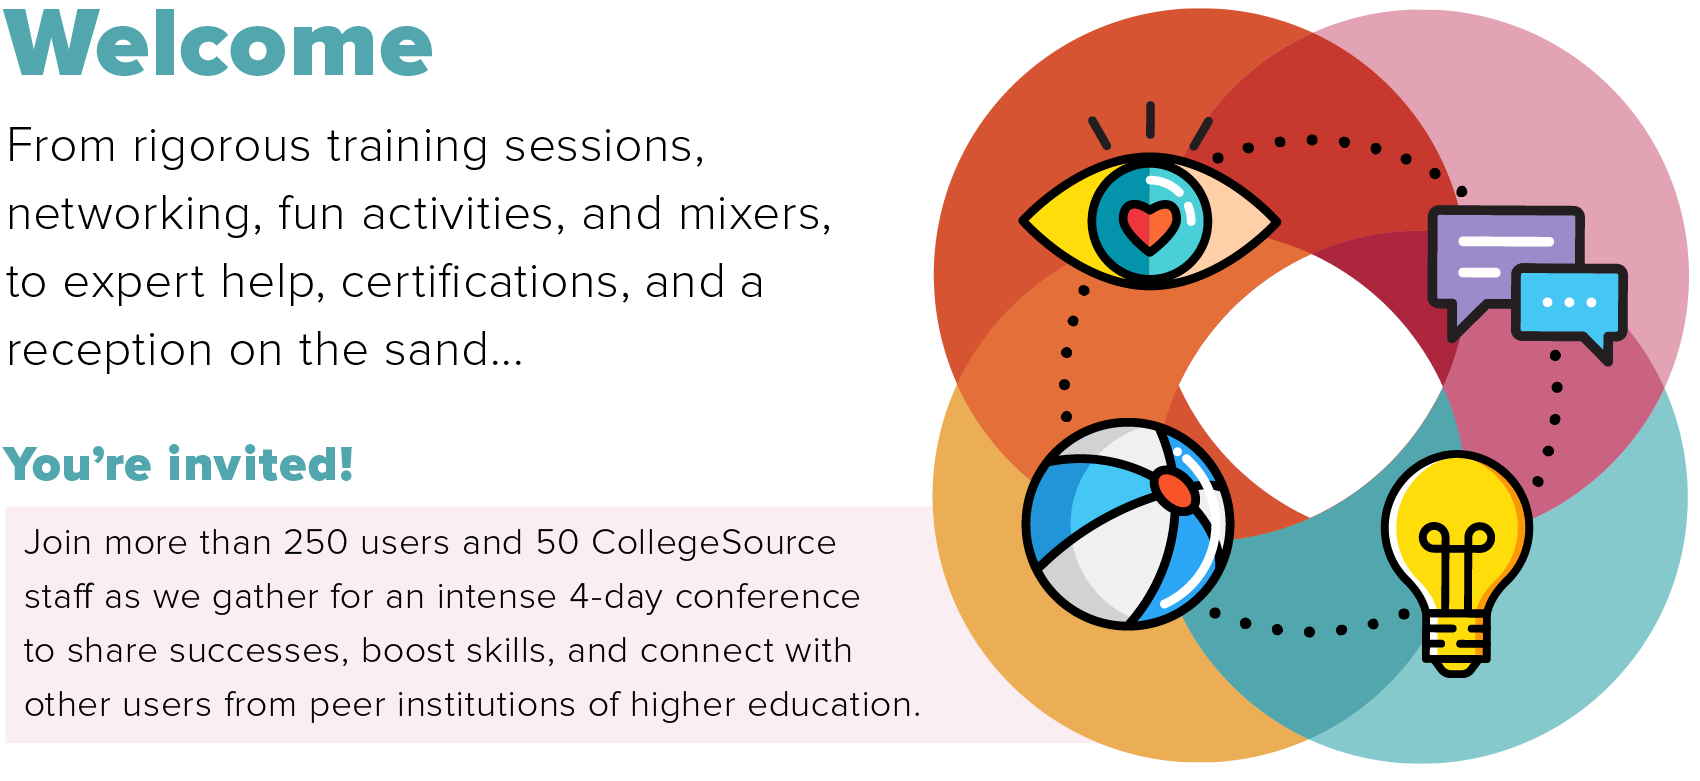 Join us at the 2018 CollegeSource Annual Conference!